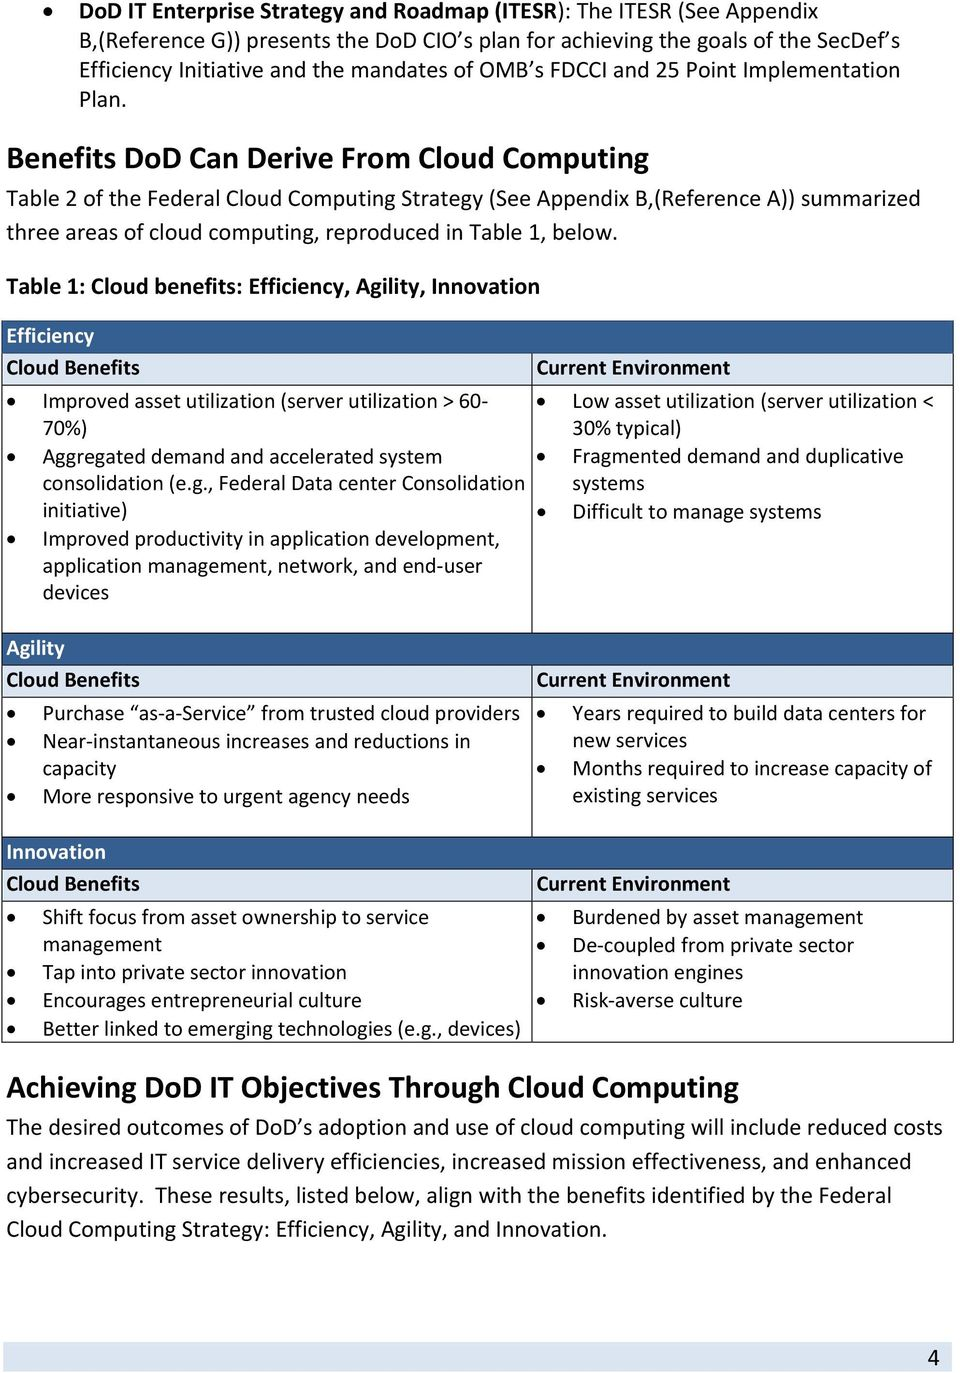 Benefits DoD Can Derive From Cloud Computing Table 2 of the Federal Cloud Computing Strategy (See Appendix B,(Reference A)) summarized three areas of cloud computing, reproduced in Table 1, below.